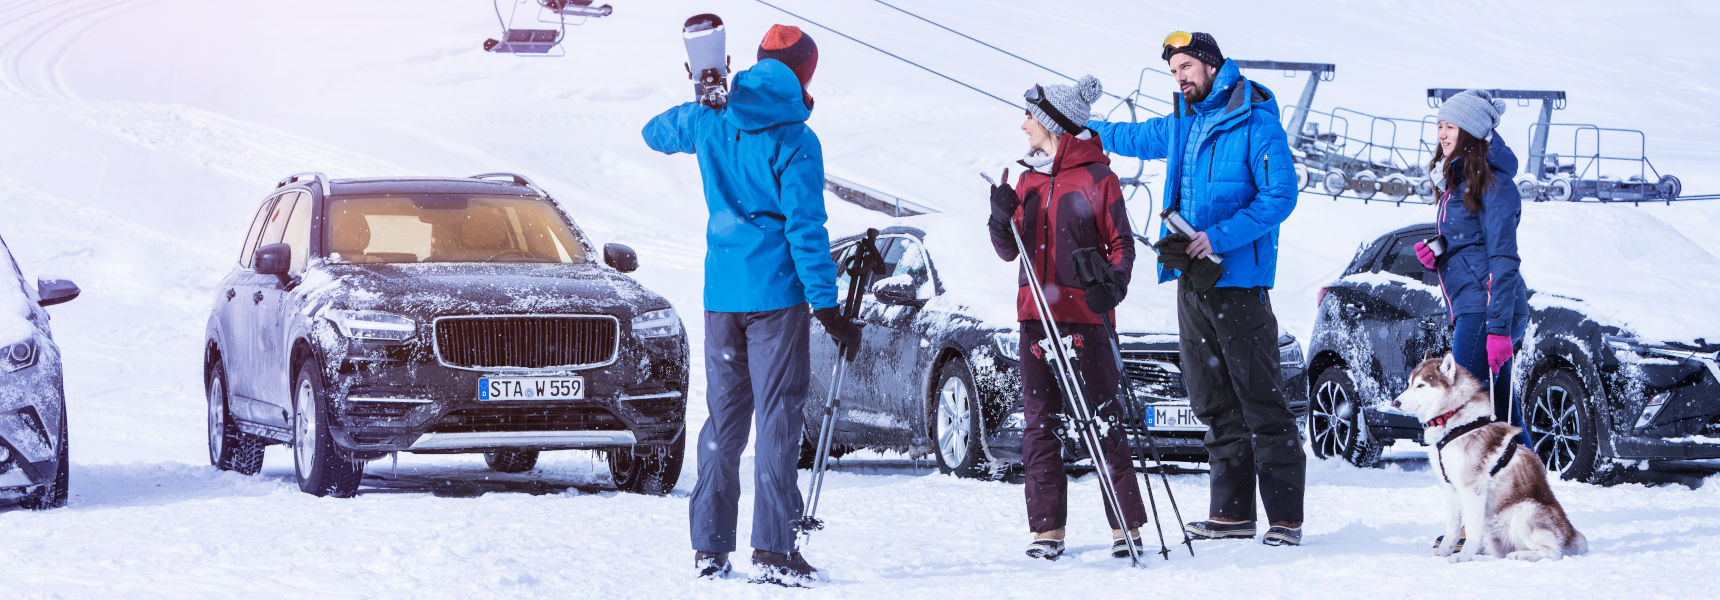 Group of skiers in front of their preheated car thanks to a Webasto parking heater